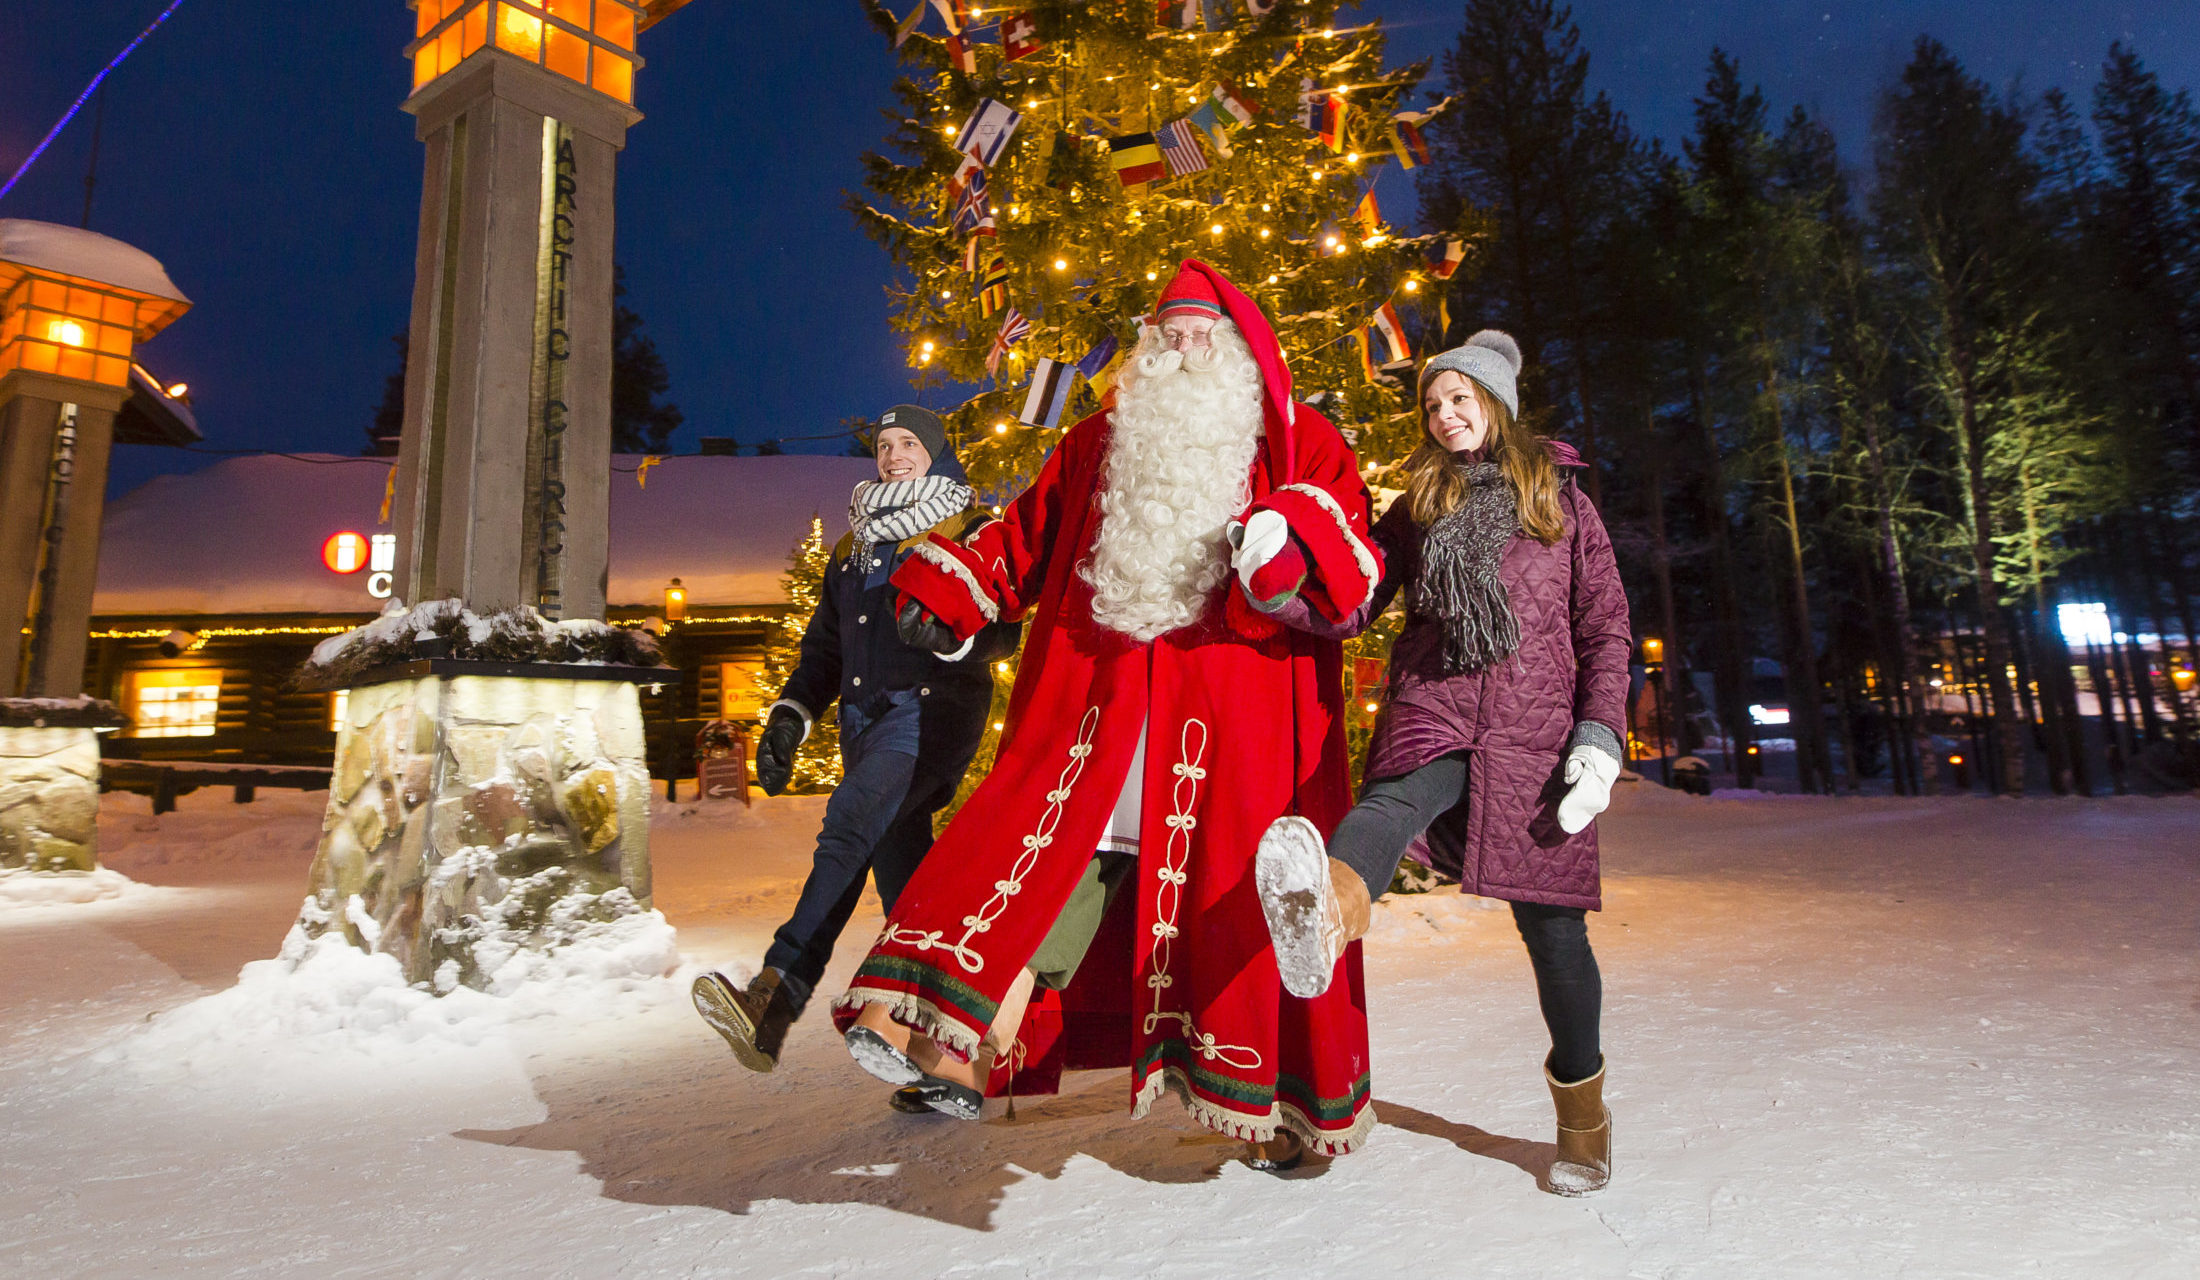 In Santa's village in Norway Christmas never ends